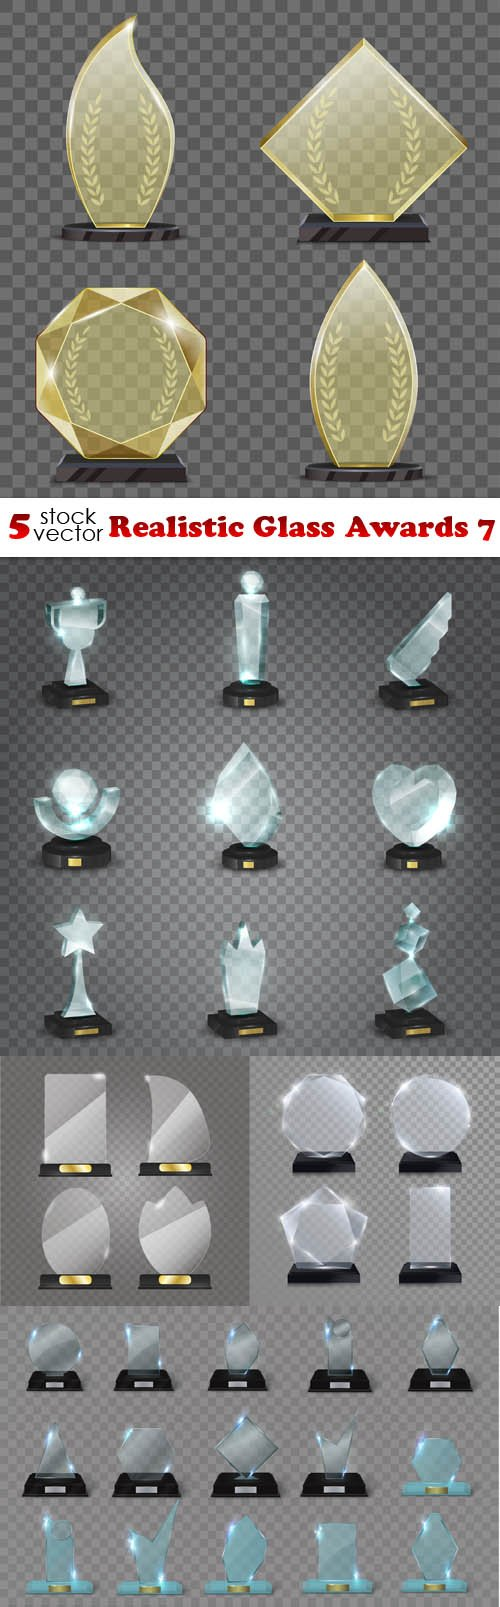 Vectors - Realistic Glass Awards 7